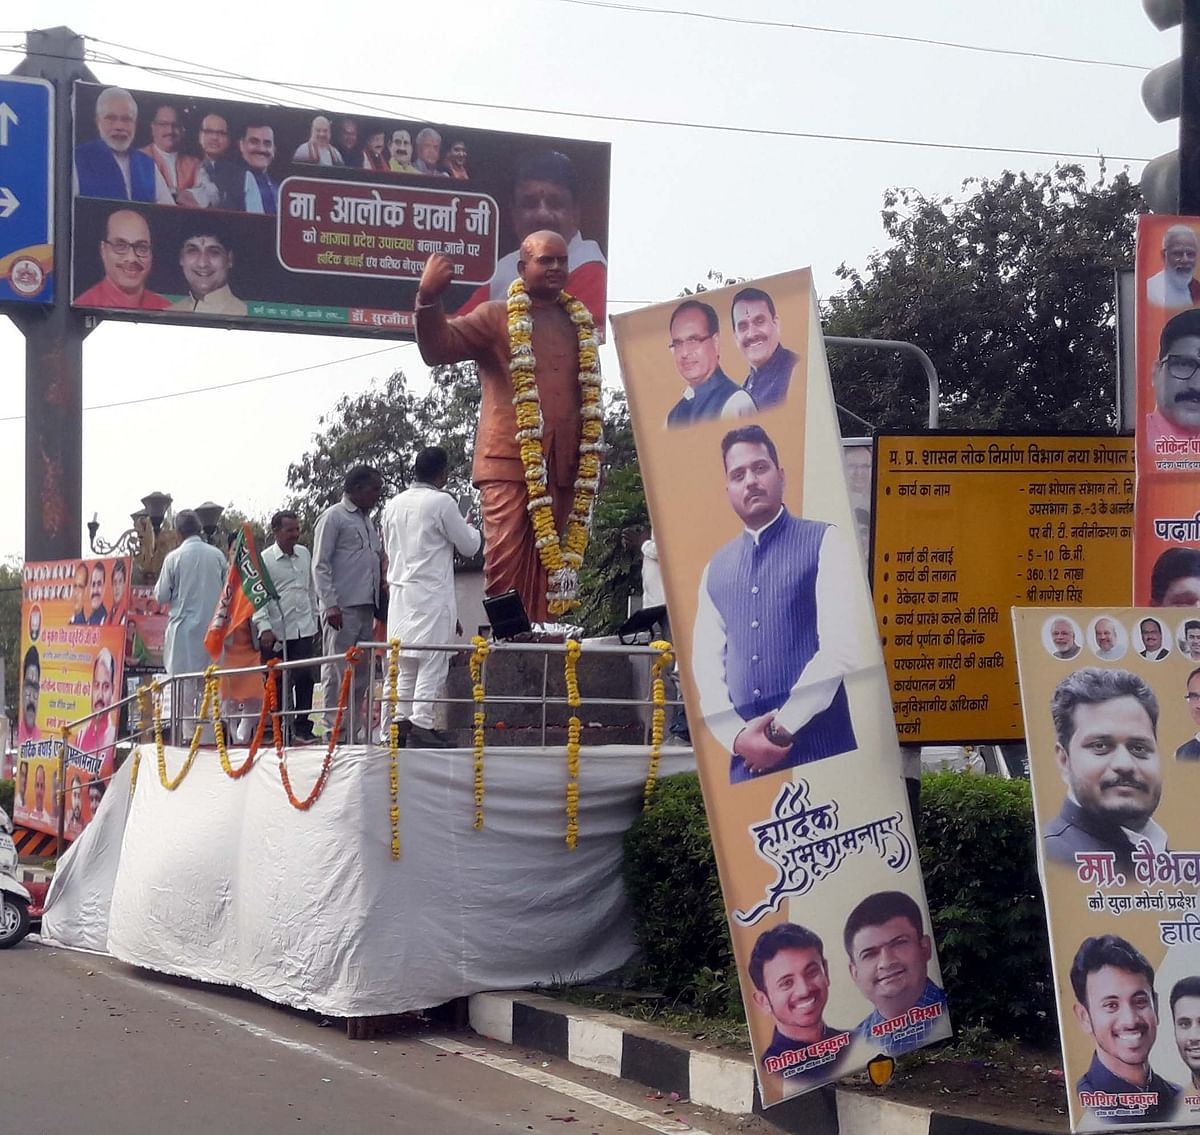 Madhya Pradesh BJP president asks party workers to shun hoardings culture